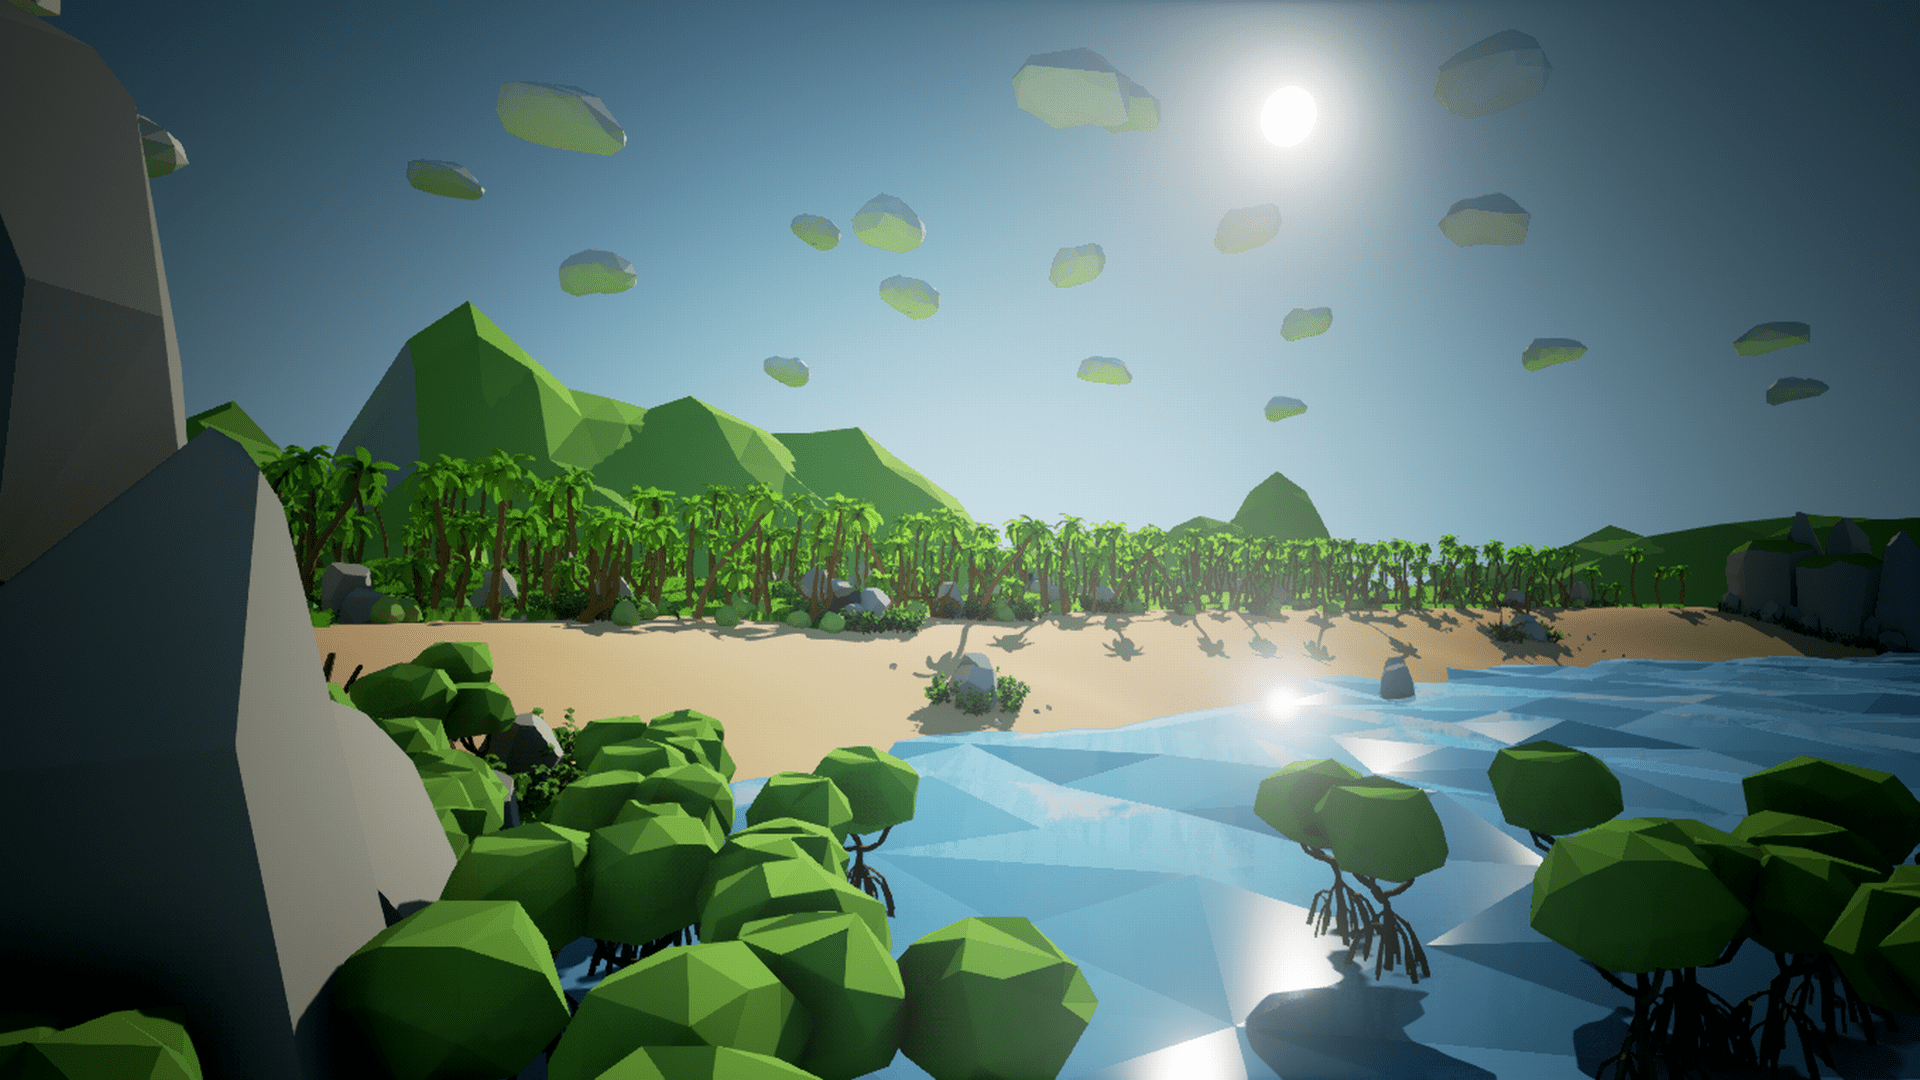 Olbert's Low Poly: Coast by Whitman And Olbert in Environments - UE4